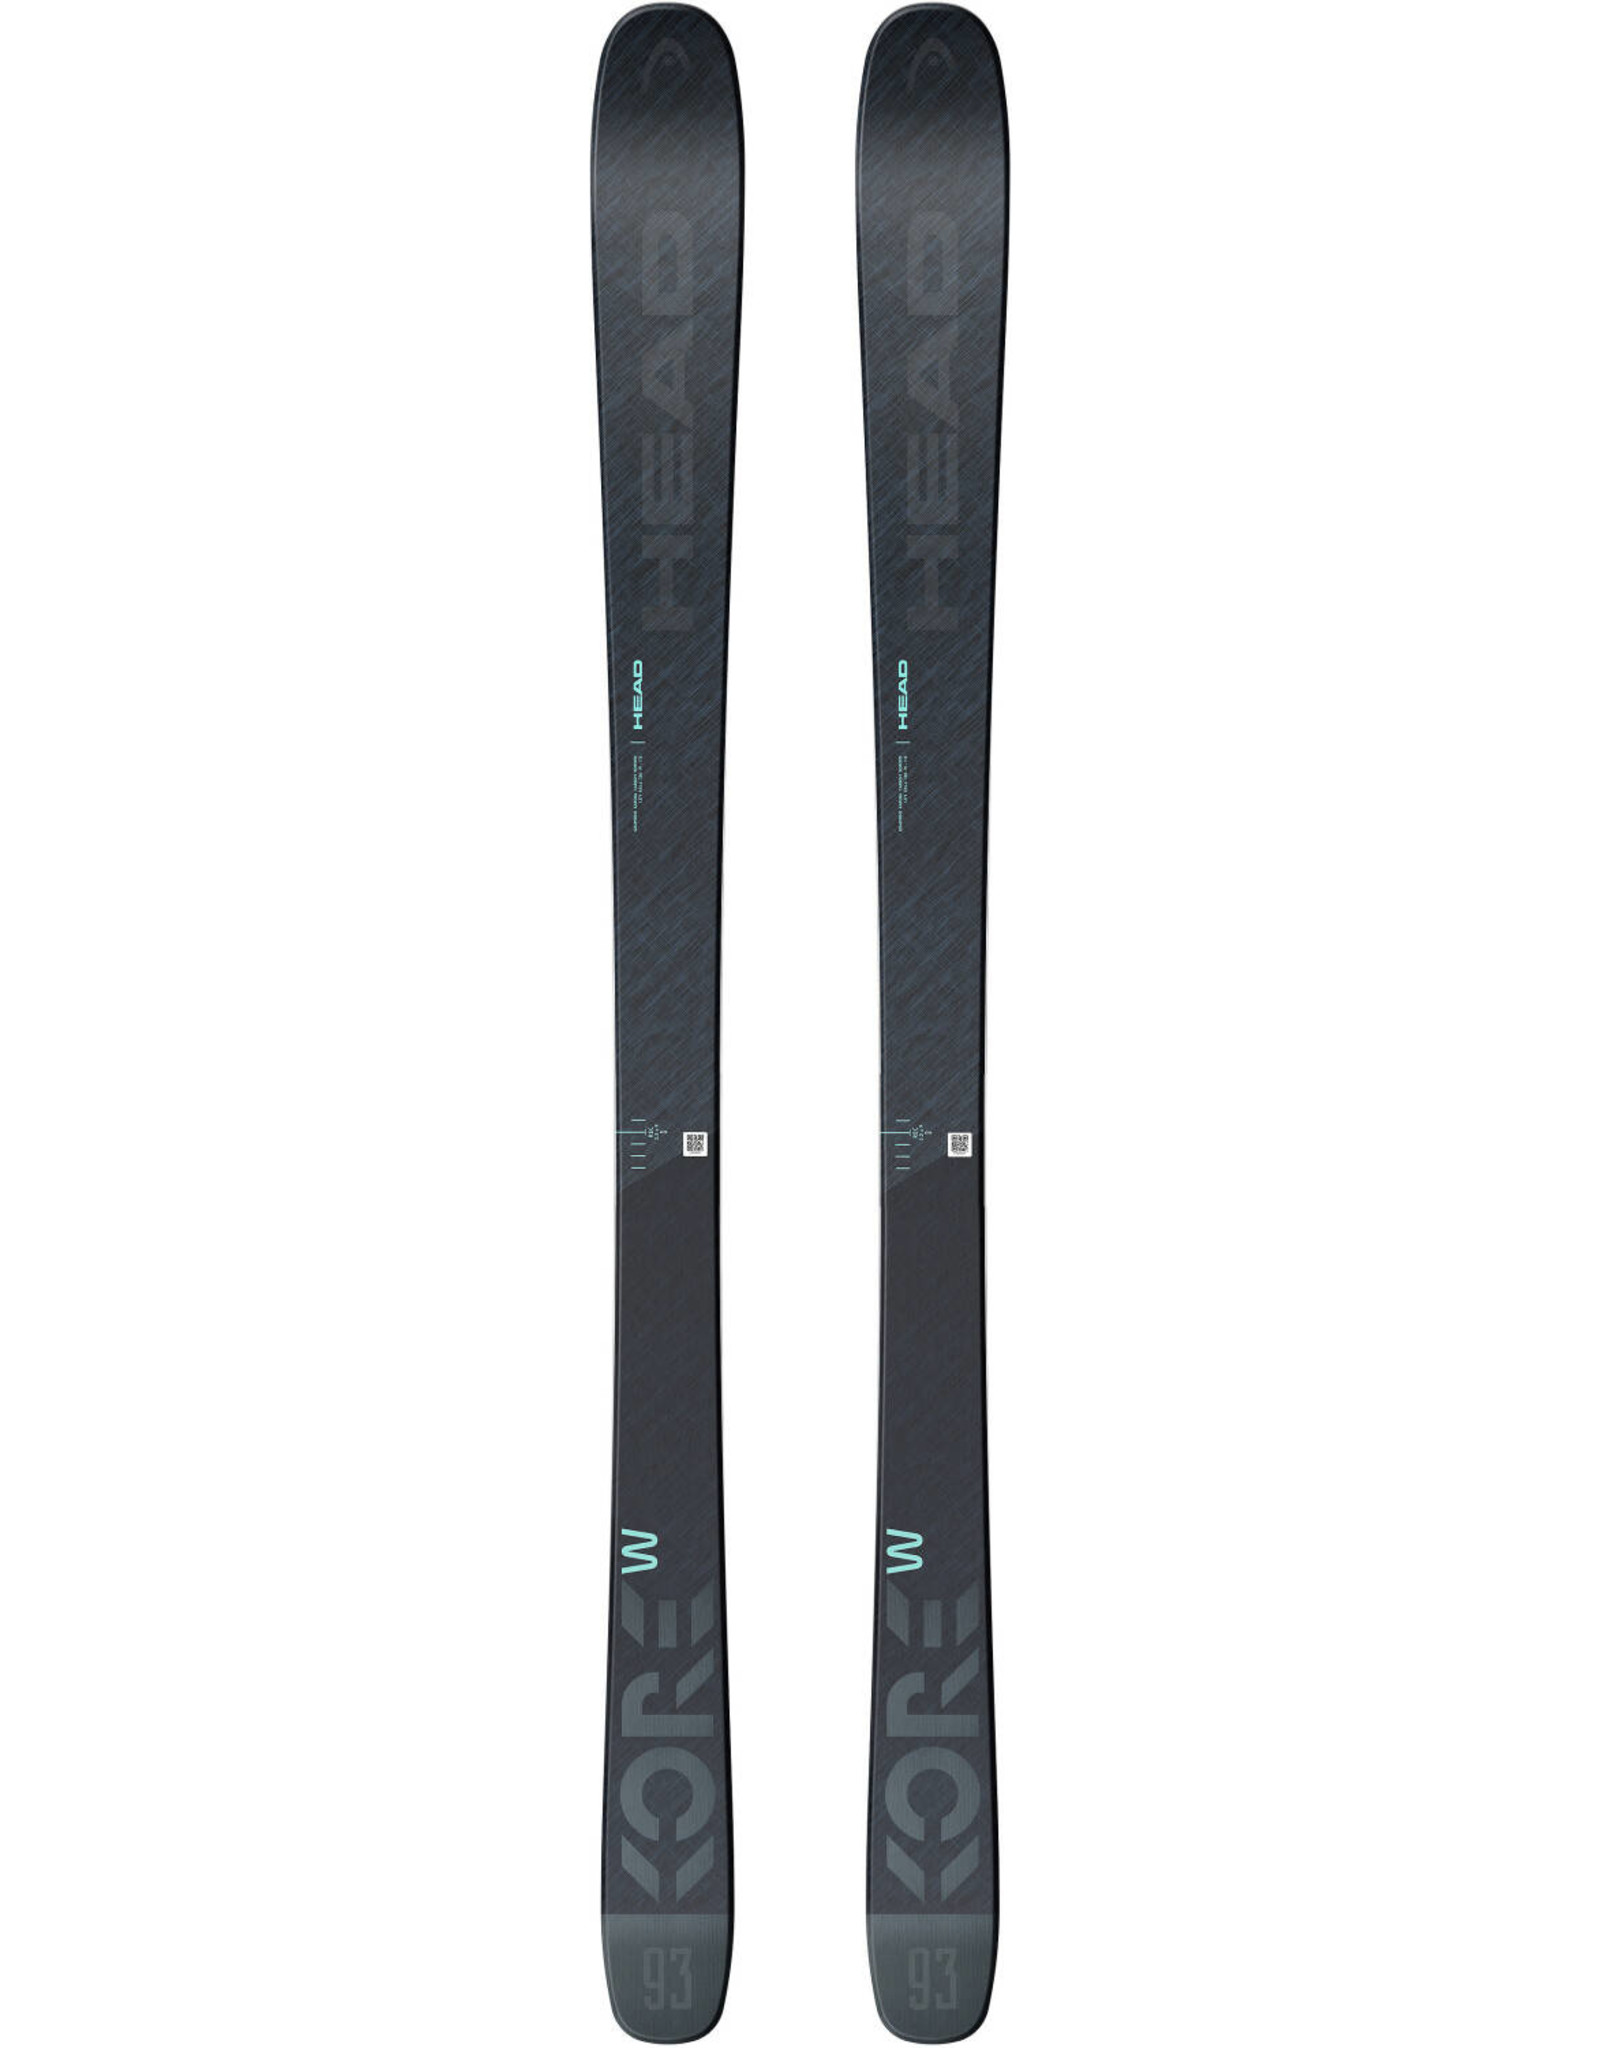 HEAD HEAD KORE 93 W GREY SR 20 FREERIDE SKI